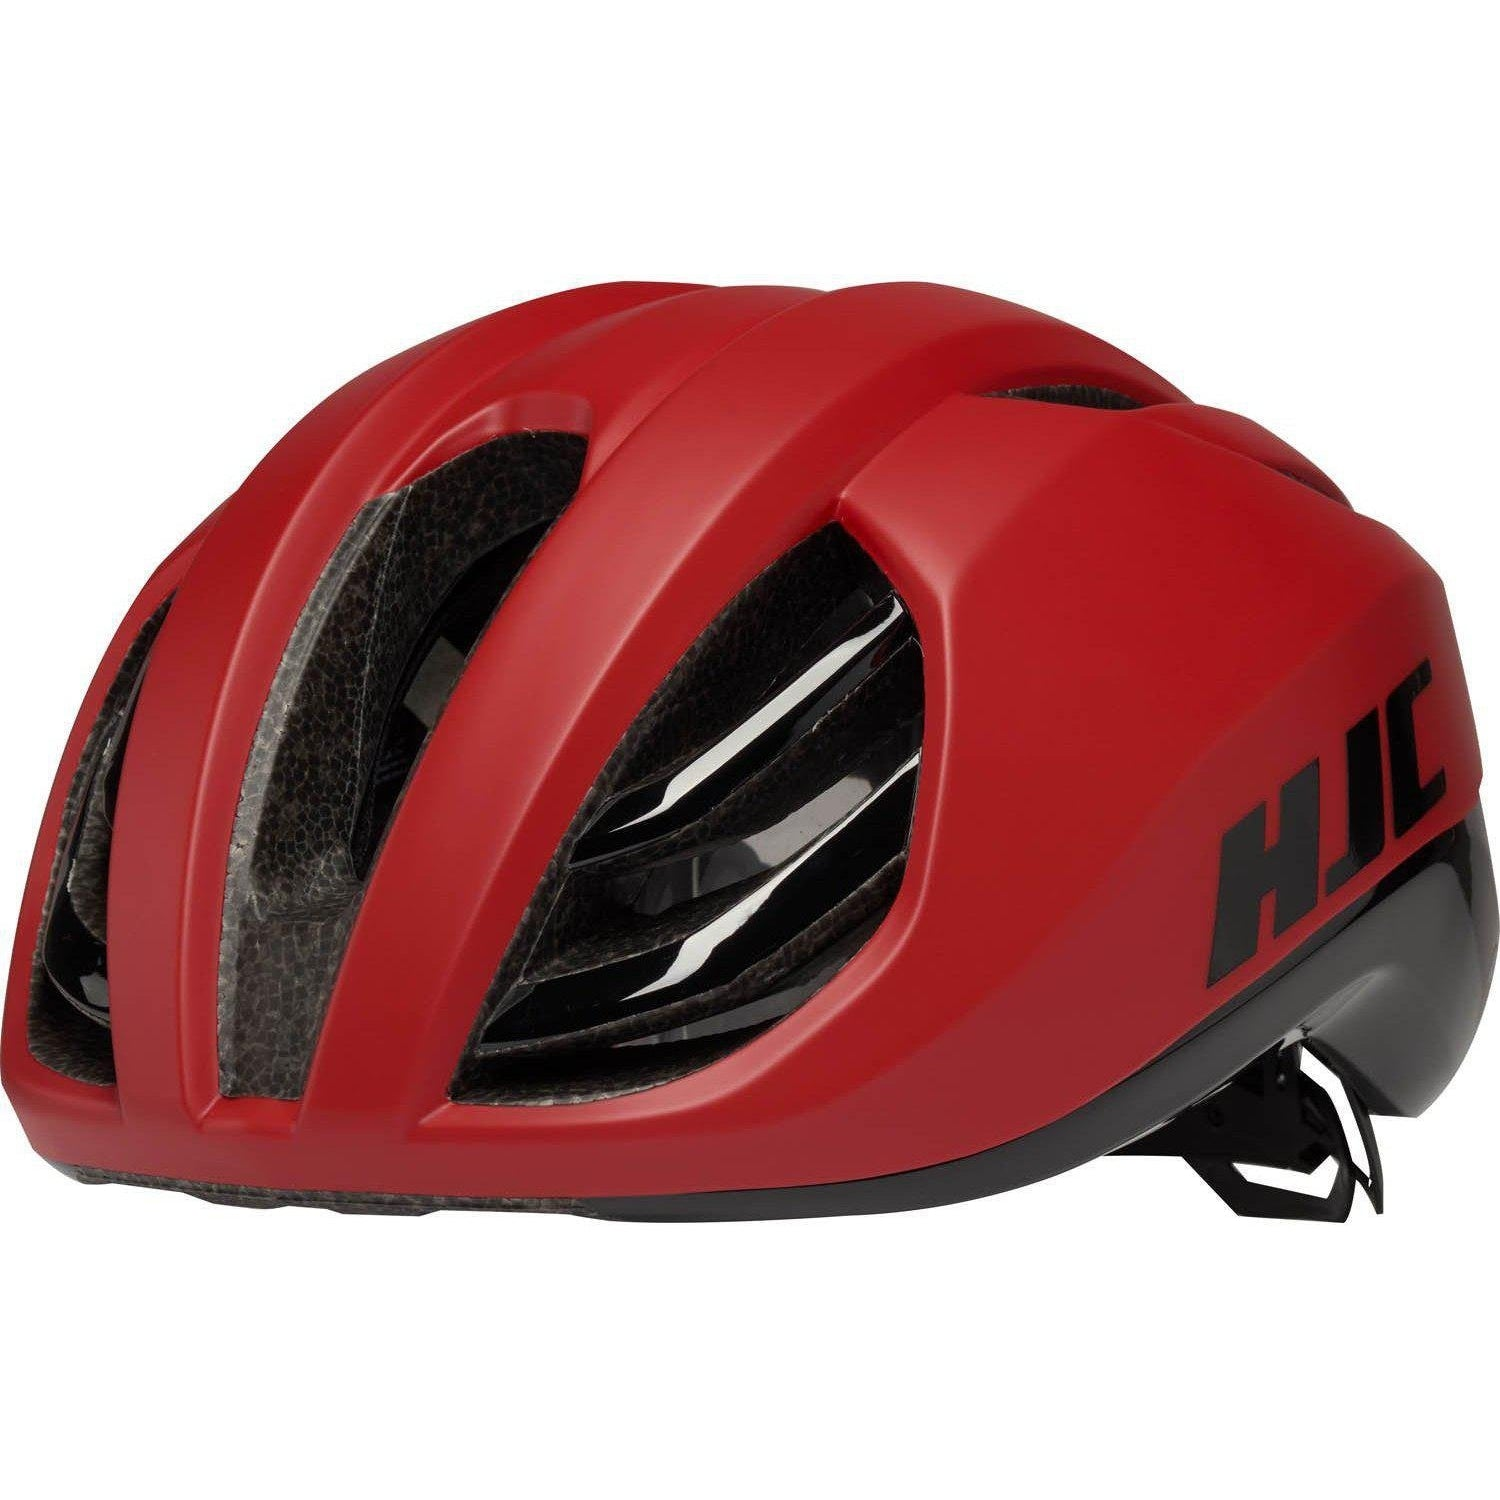 HJC-HJC Atara Road Cycling Helmet-S-Red-HJC81180101-saddleback-elite-performance-cycling